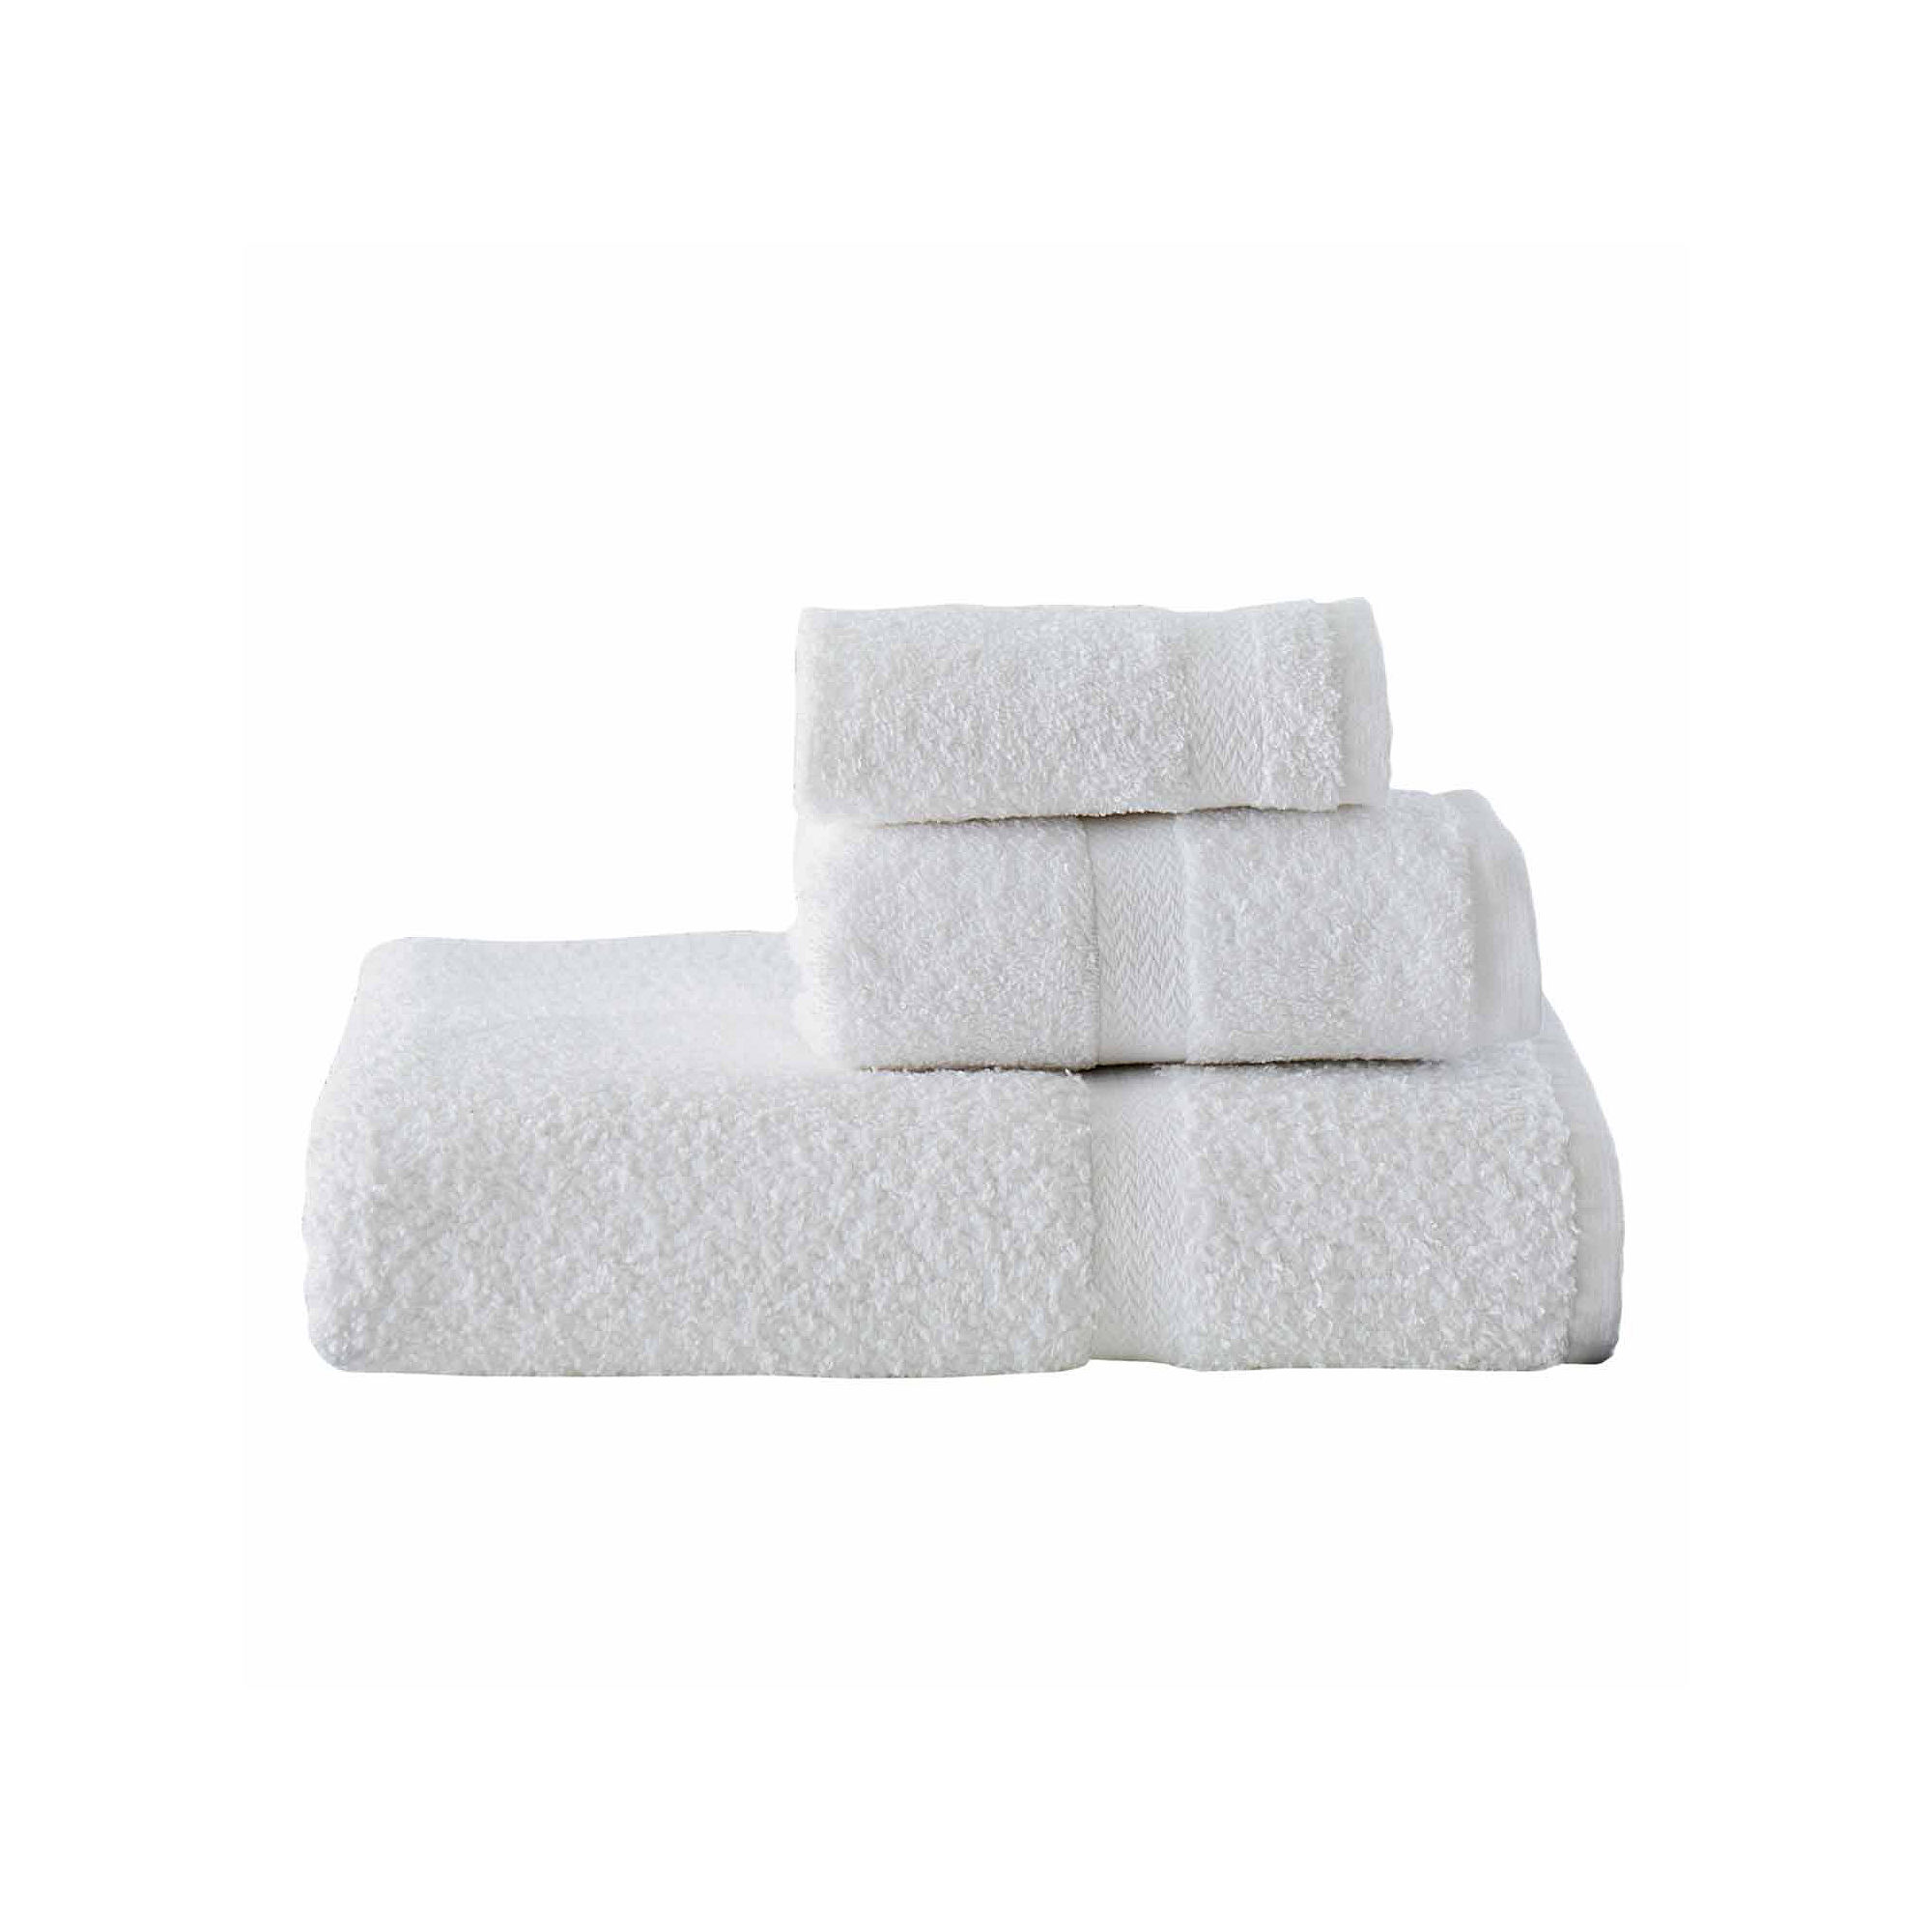 Welington 48-pc. 27x54 Bath Towel